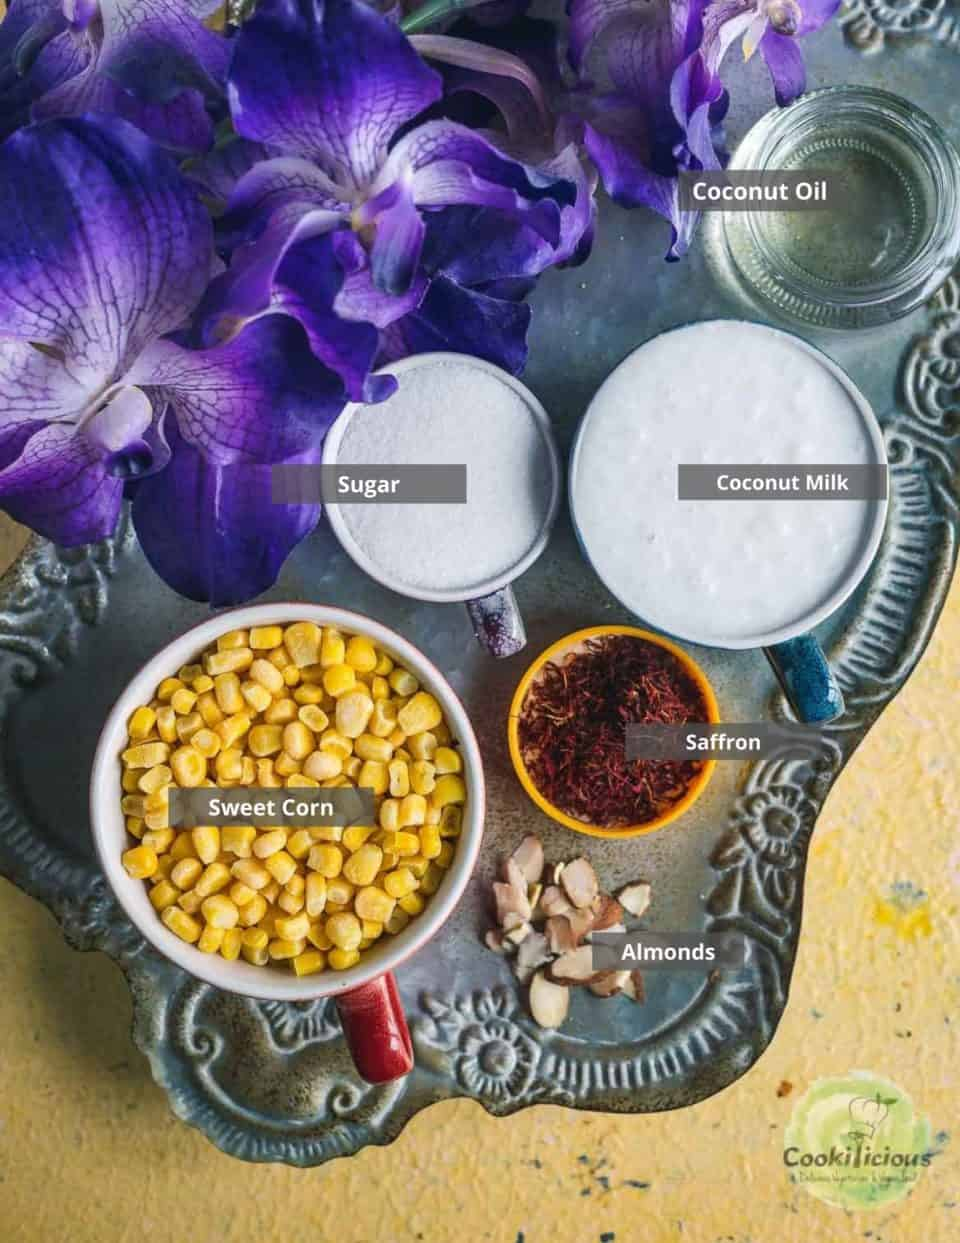 all the ingredients needed to make Jhajhariya (vegan coconut milk pudding) placed on a tray with labels on them